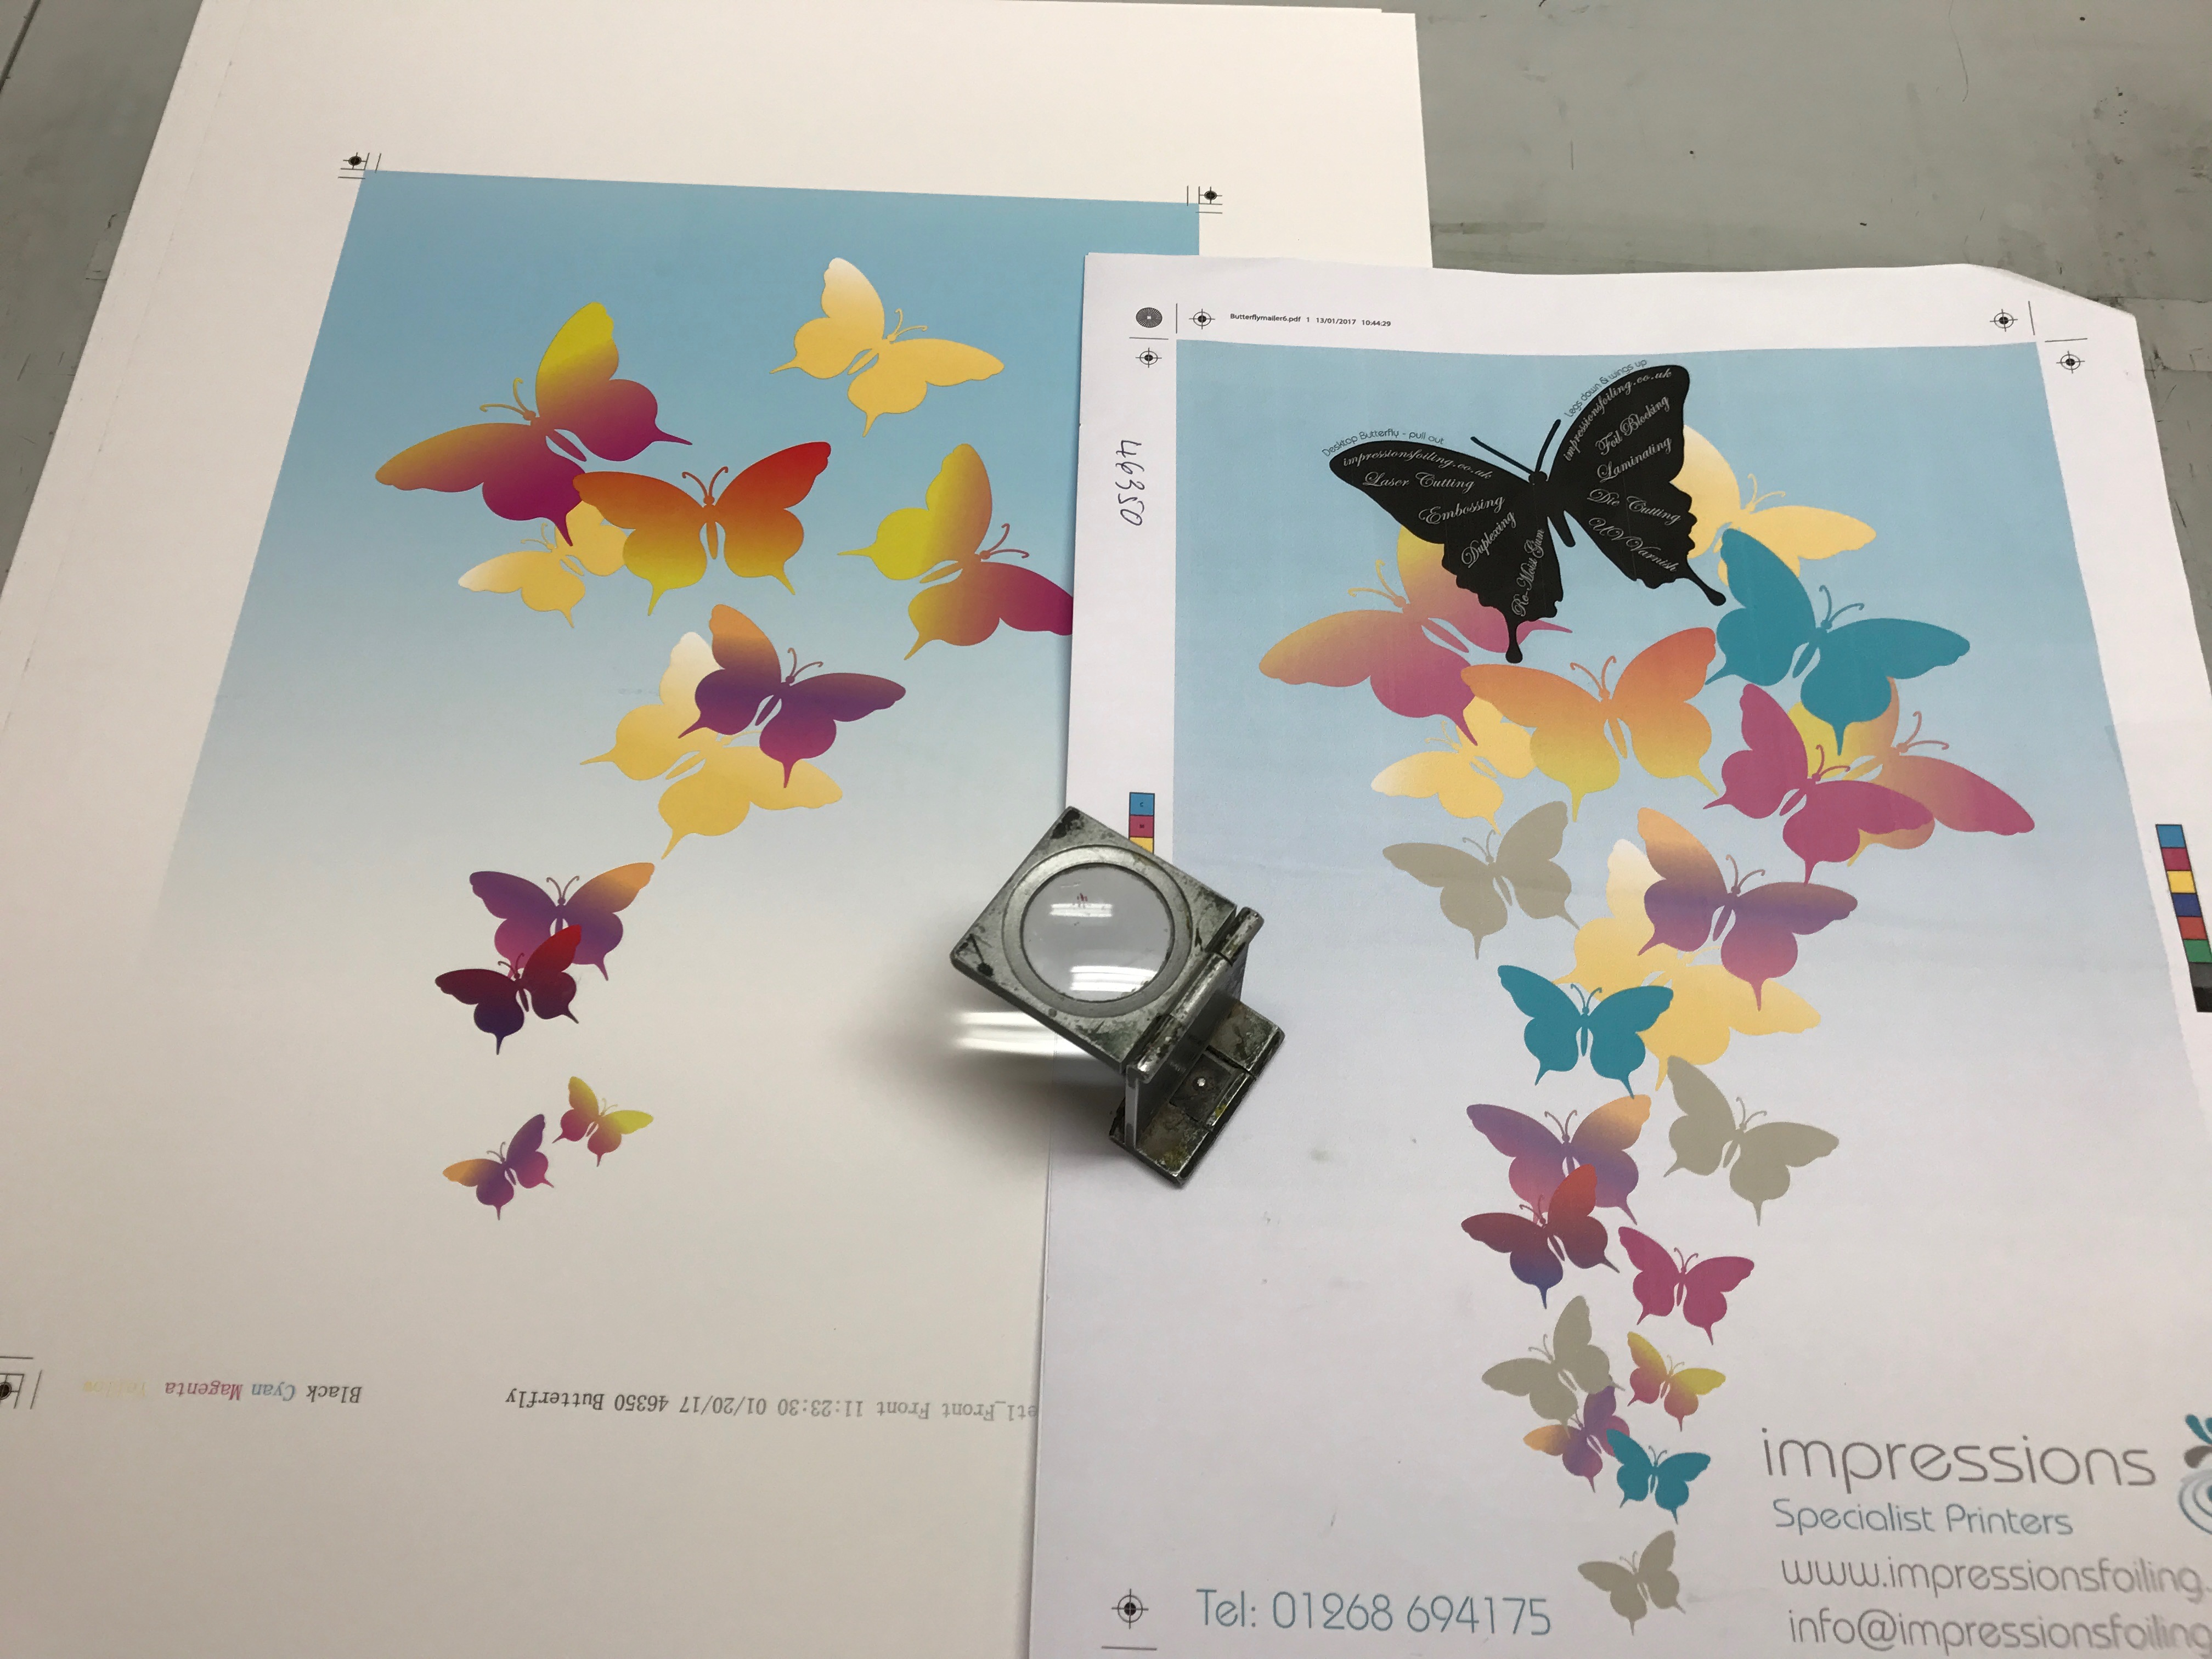 Impressions Mailer @ Litho Stage